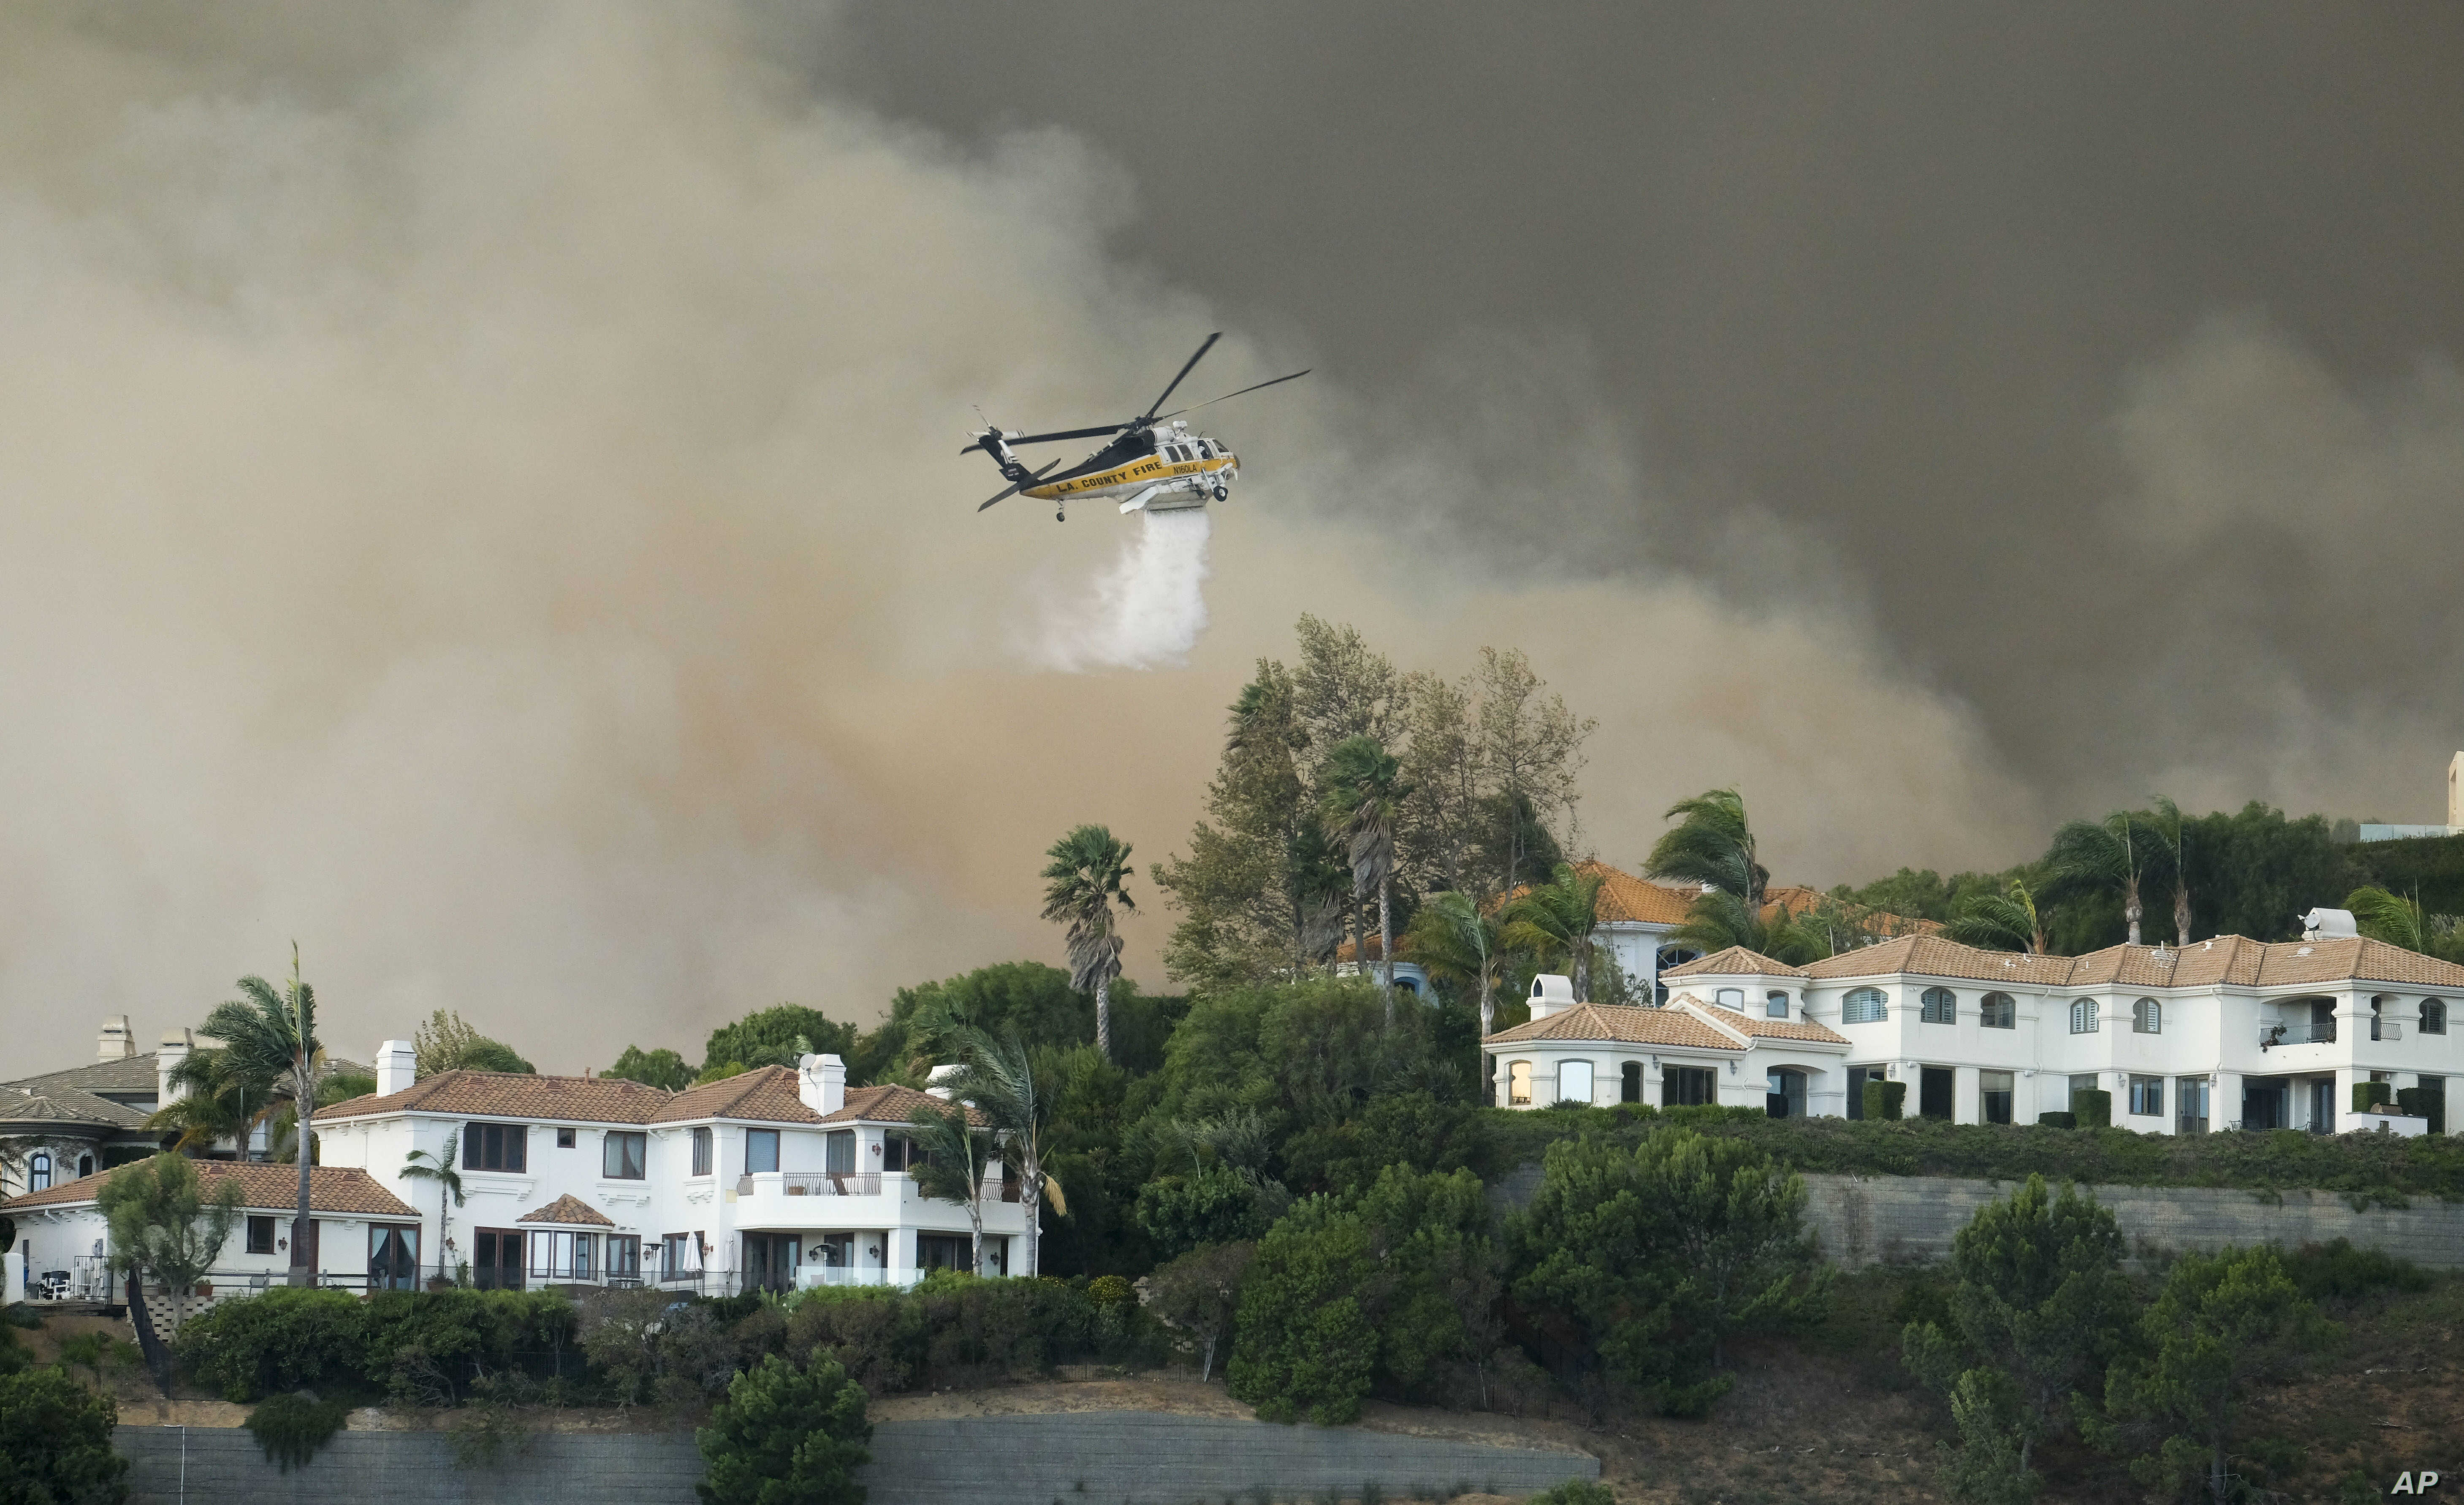 A helicopter drops water on a brush fire behind homes during the Woolsey Fire in Malibu, Calif., Nov. 9, 2018. A fast-moving wildfire in Southern California has scorched a historic movie site and forced numerous celebrities to join the thousands flee...